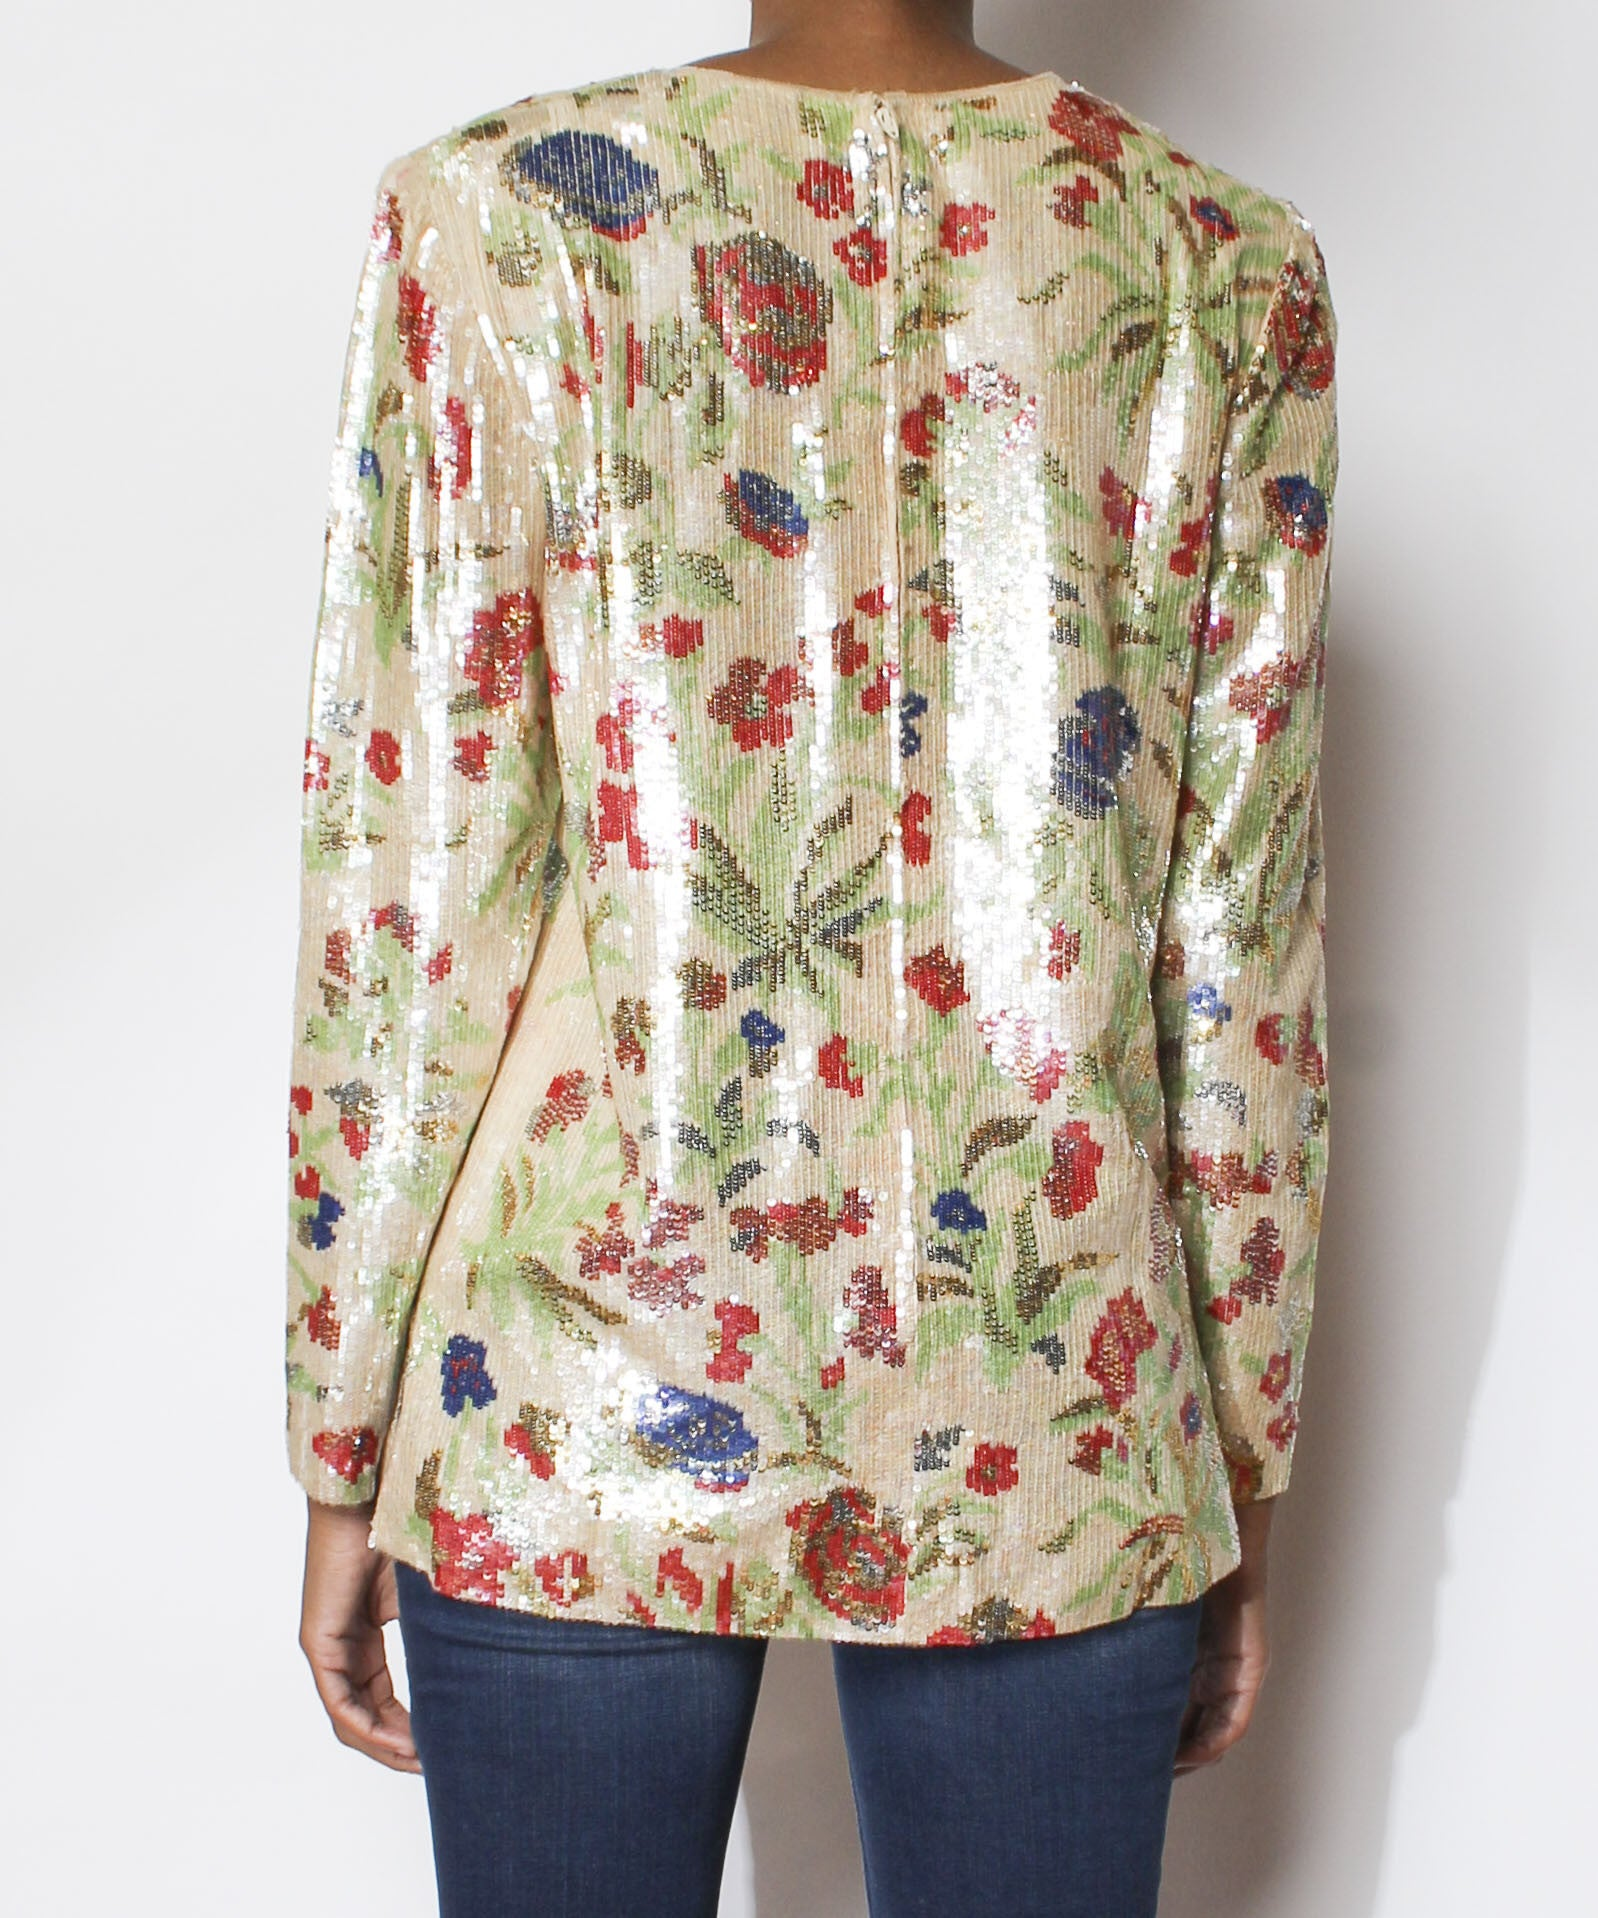 Bill Blass 1980s Floral Sequined Top - C.Madeleine's